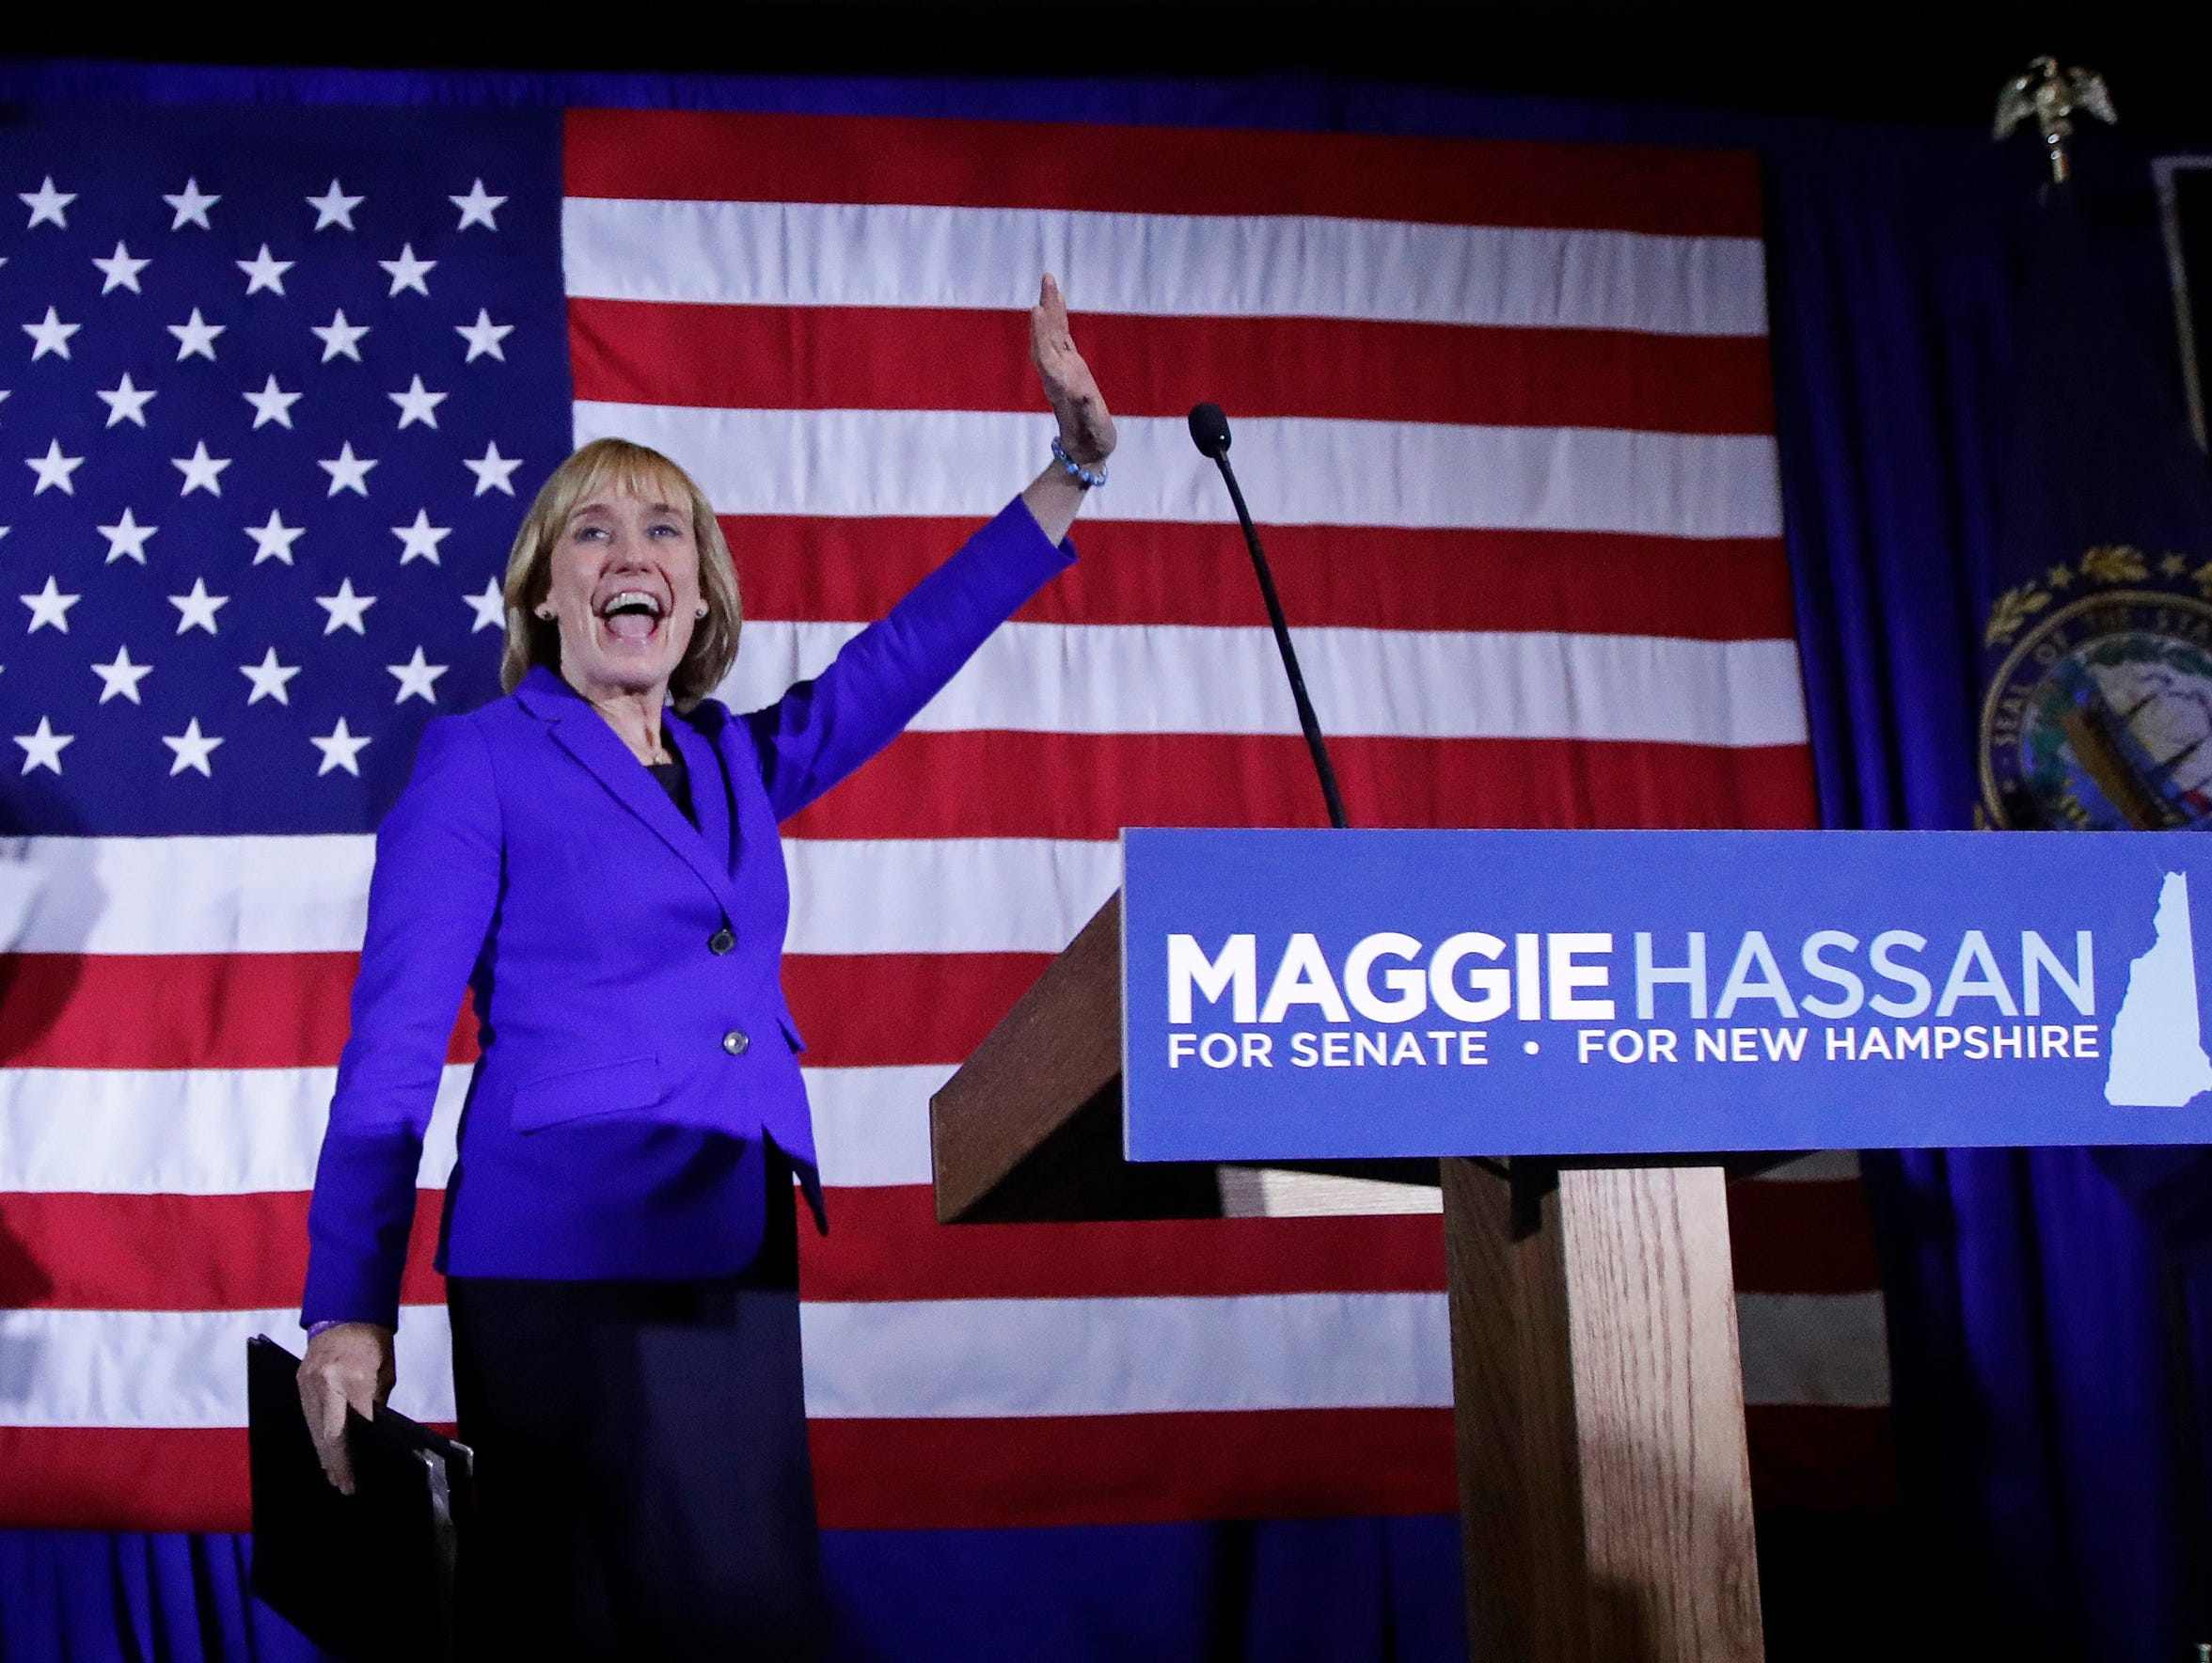 Maggie Hassan waves to supporters during an election